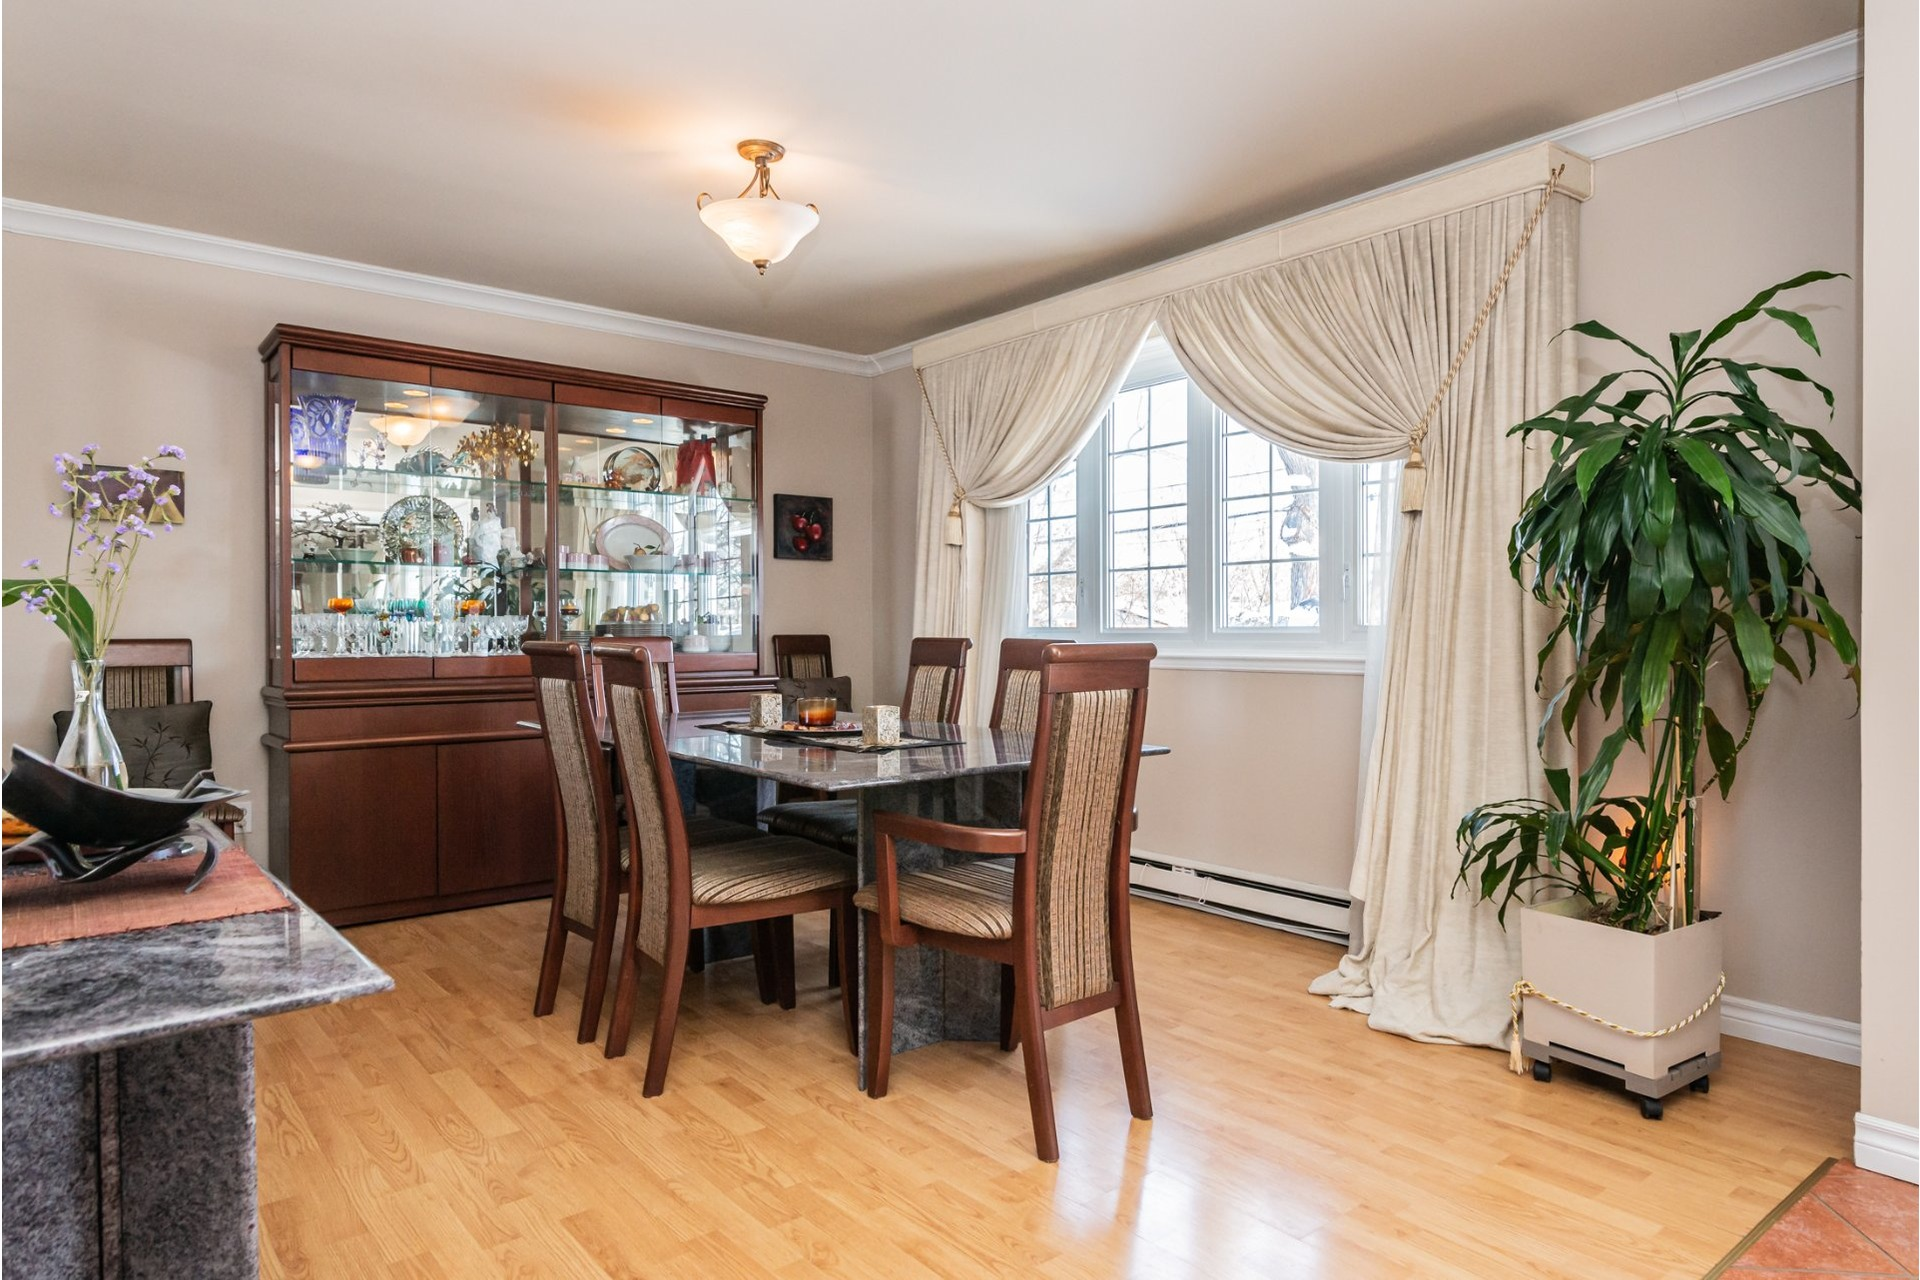 image 4 - House For sale L'Île-Bizard/Sainte-Geneviève Montréal  - 12 rooms